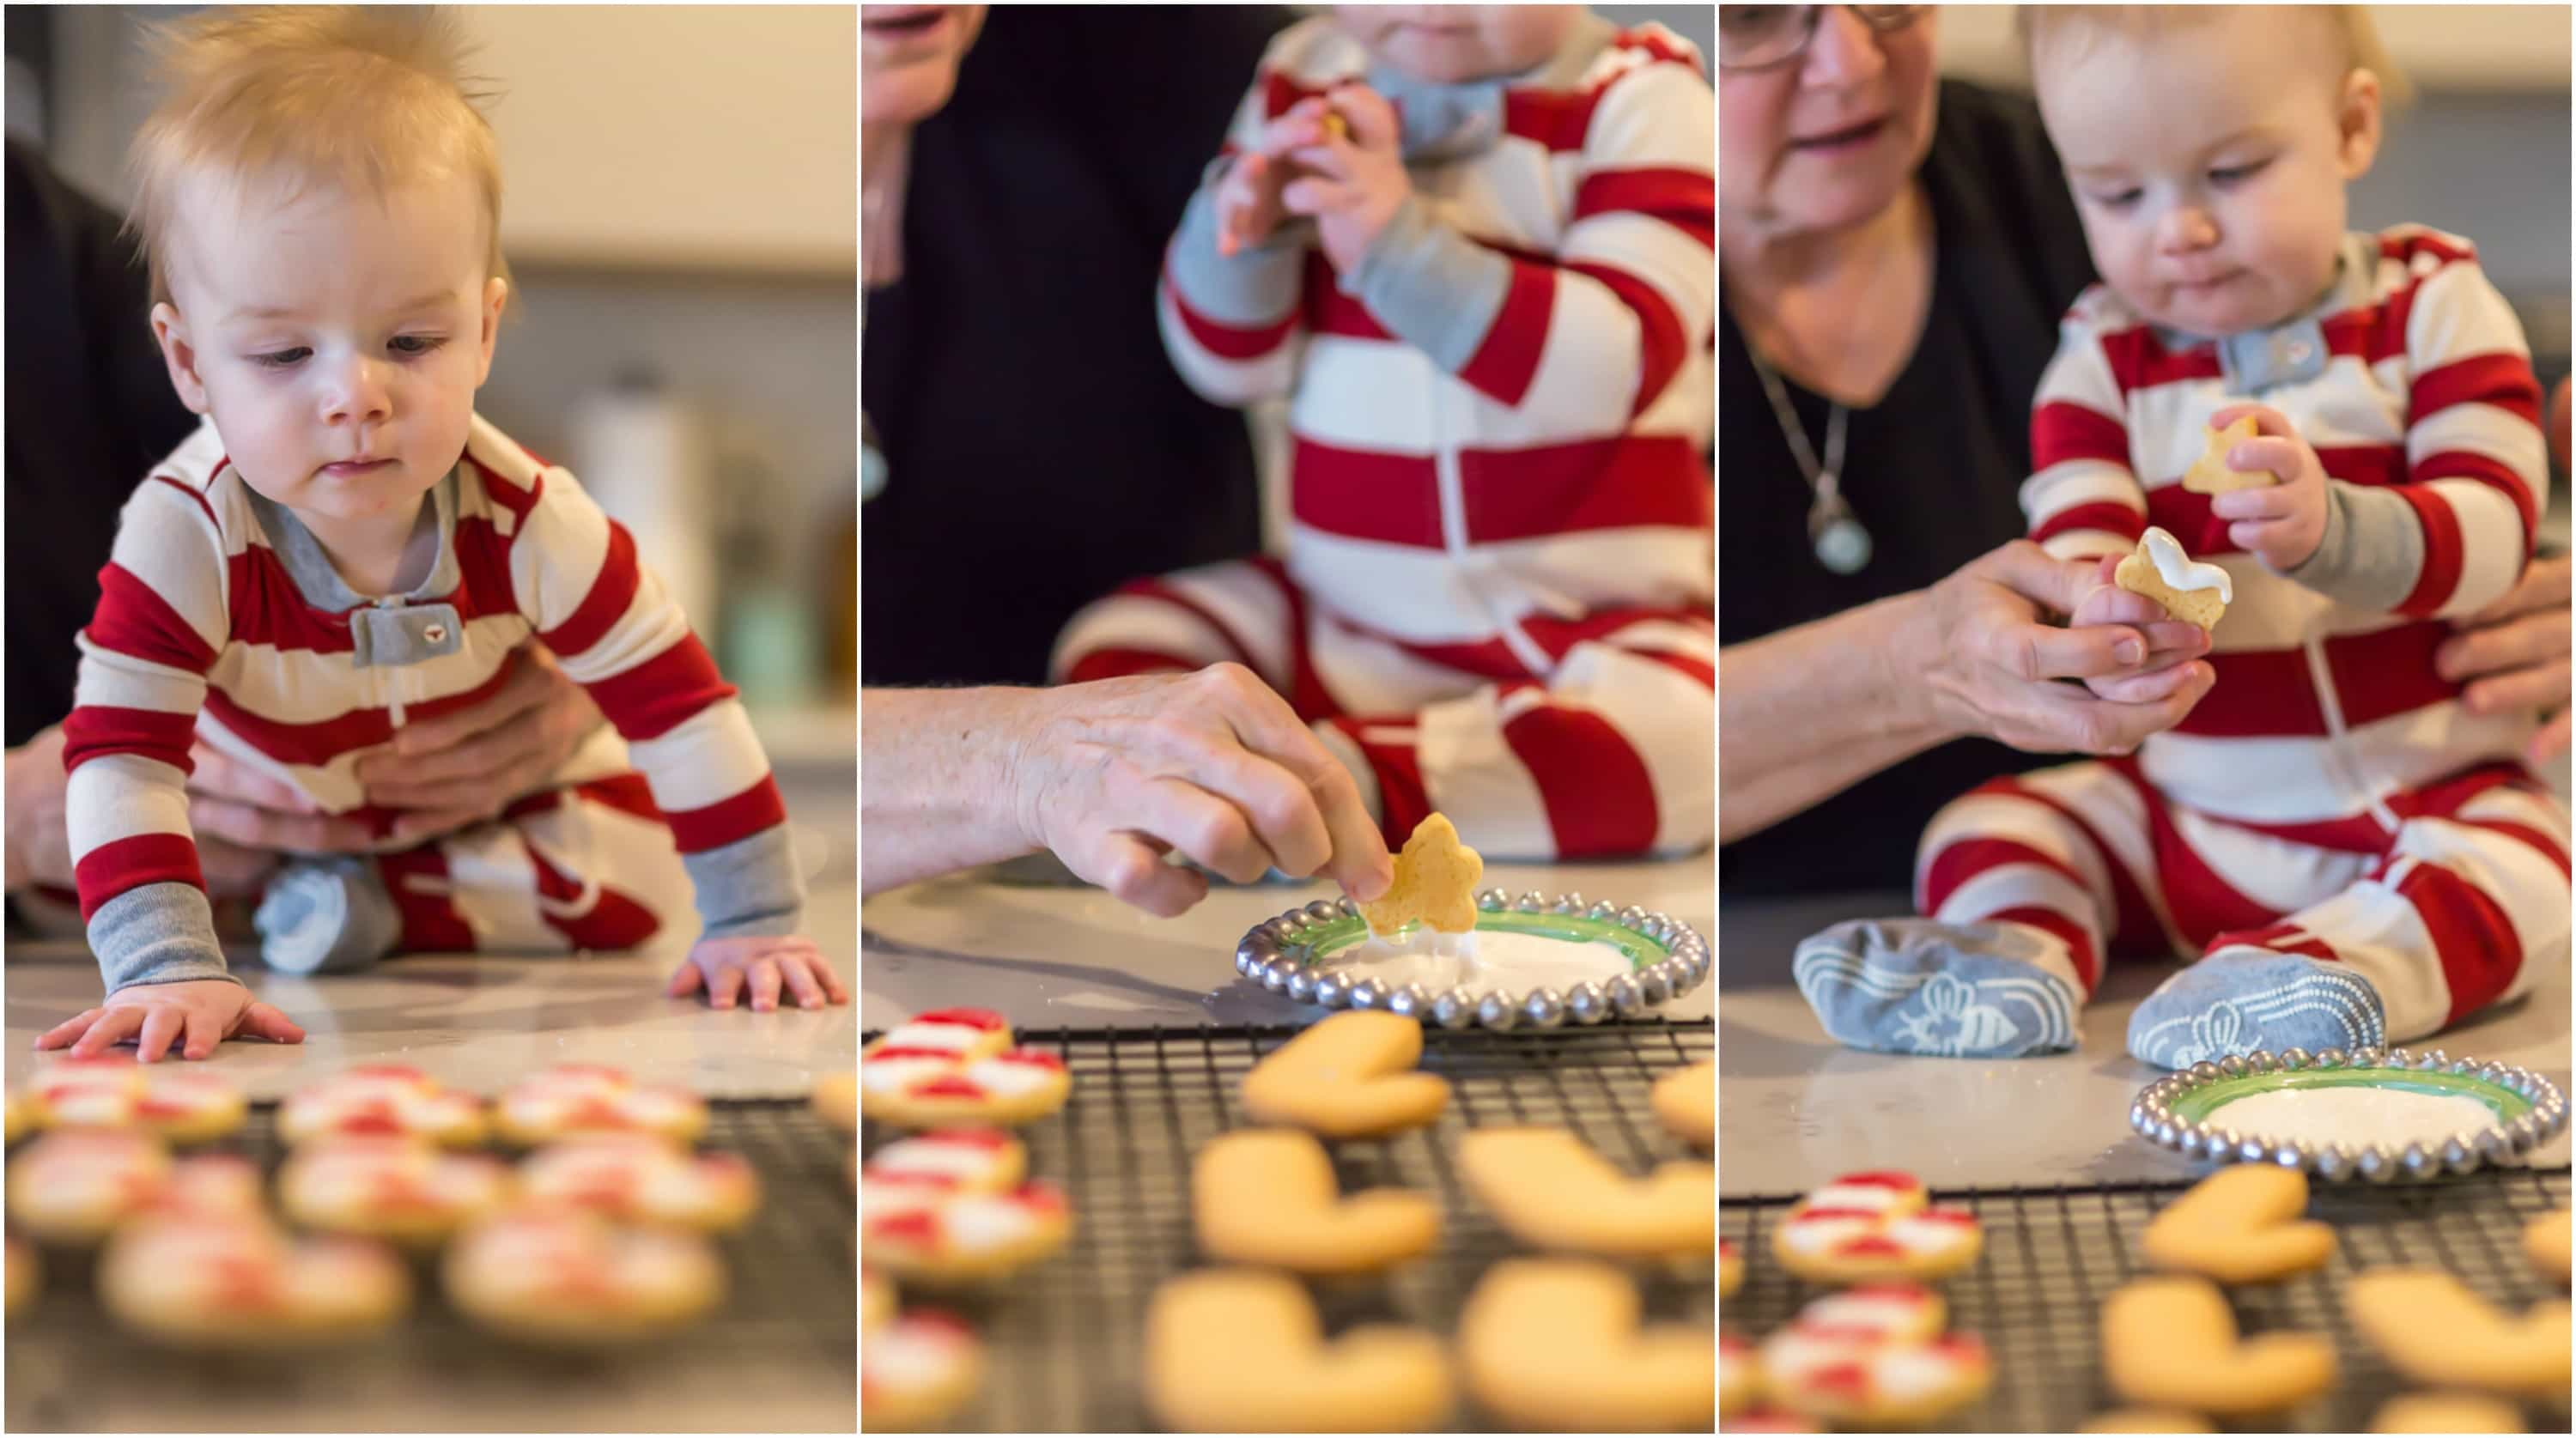 photo collage of a 9 month old baby boy wearing red and white striped pajamas decorating red and white candy cane Christmas cookies with his grandma